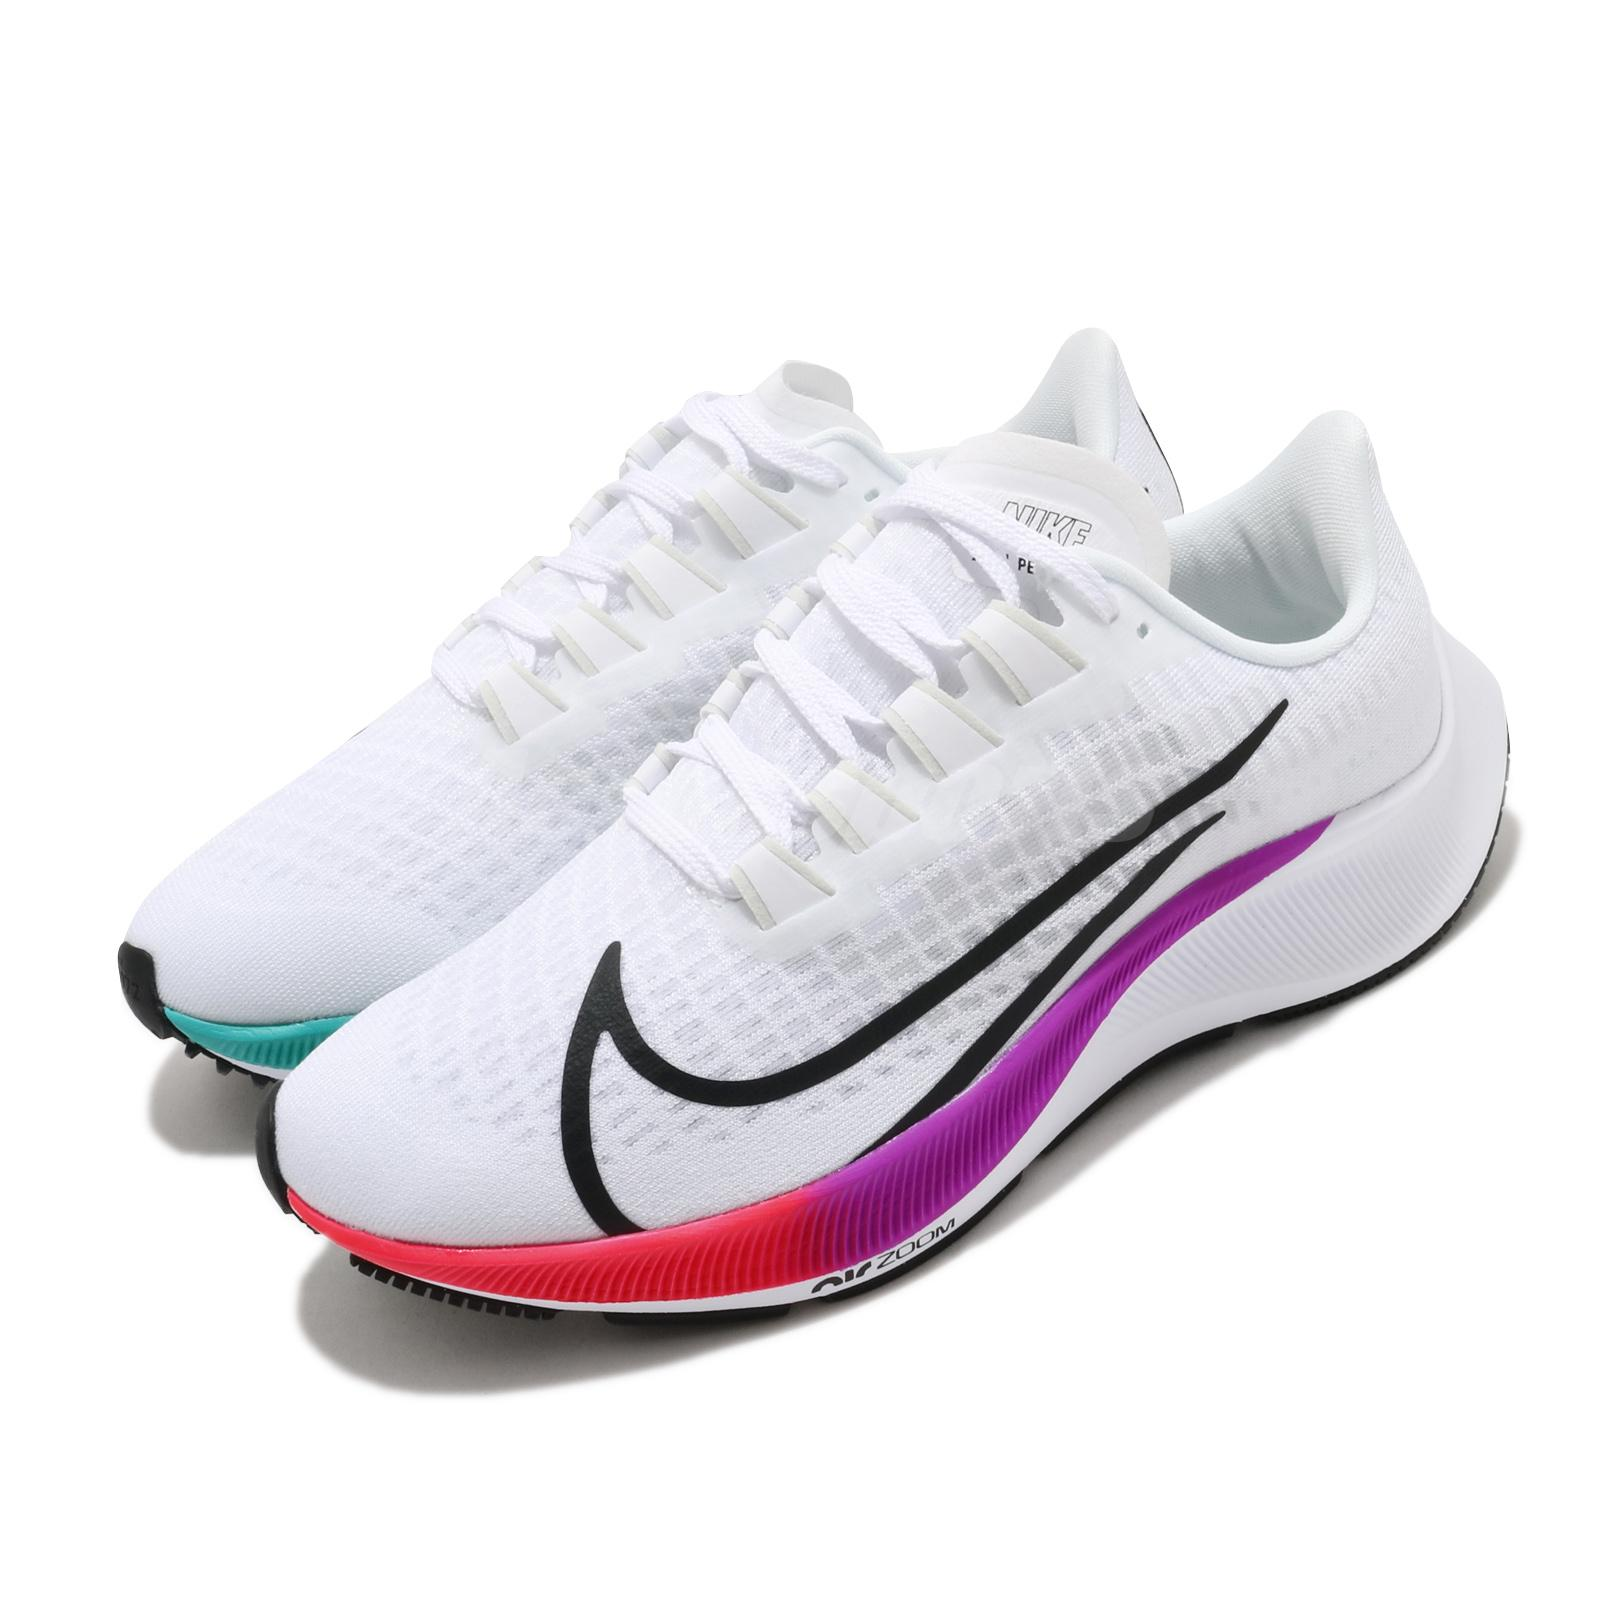 Festival famélico intercambiar  Nike Wmns Air Zoom Pegasus 37 White Flash Crimson Women Running Shoes  BQ9647-103 | eBay